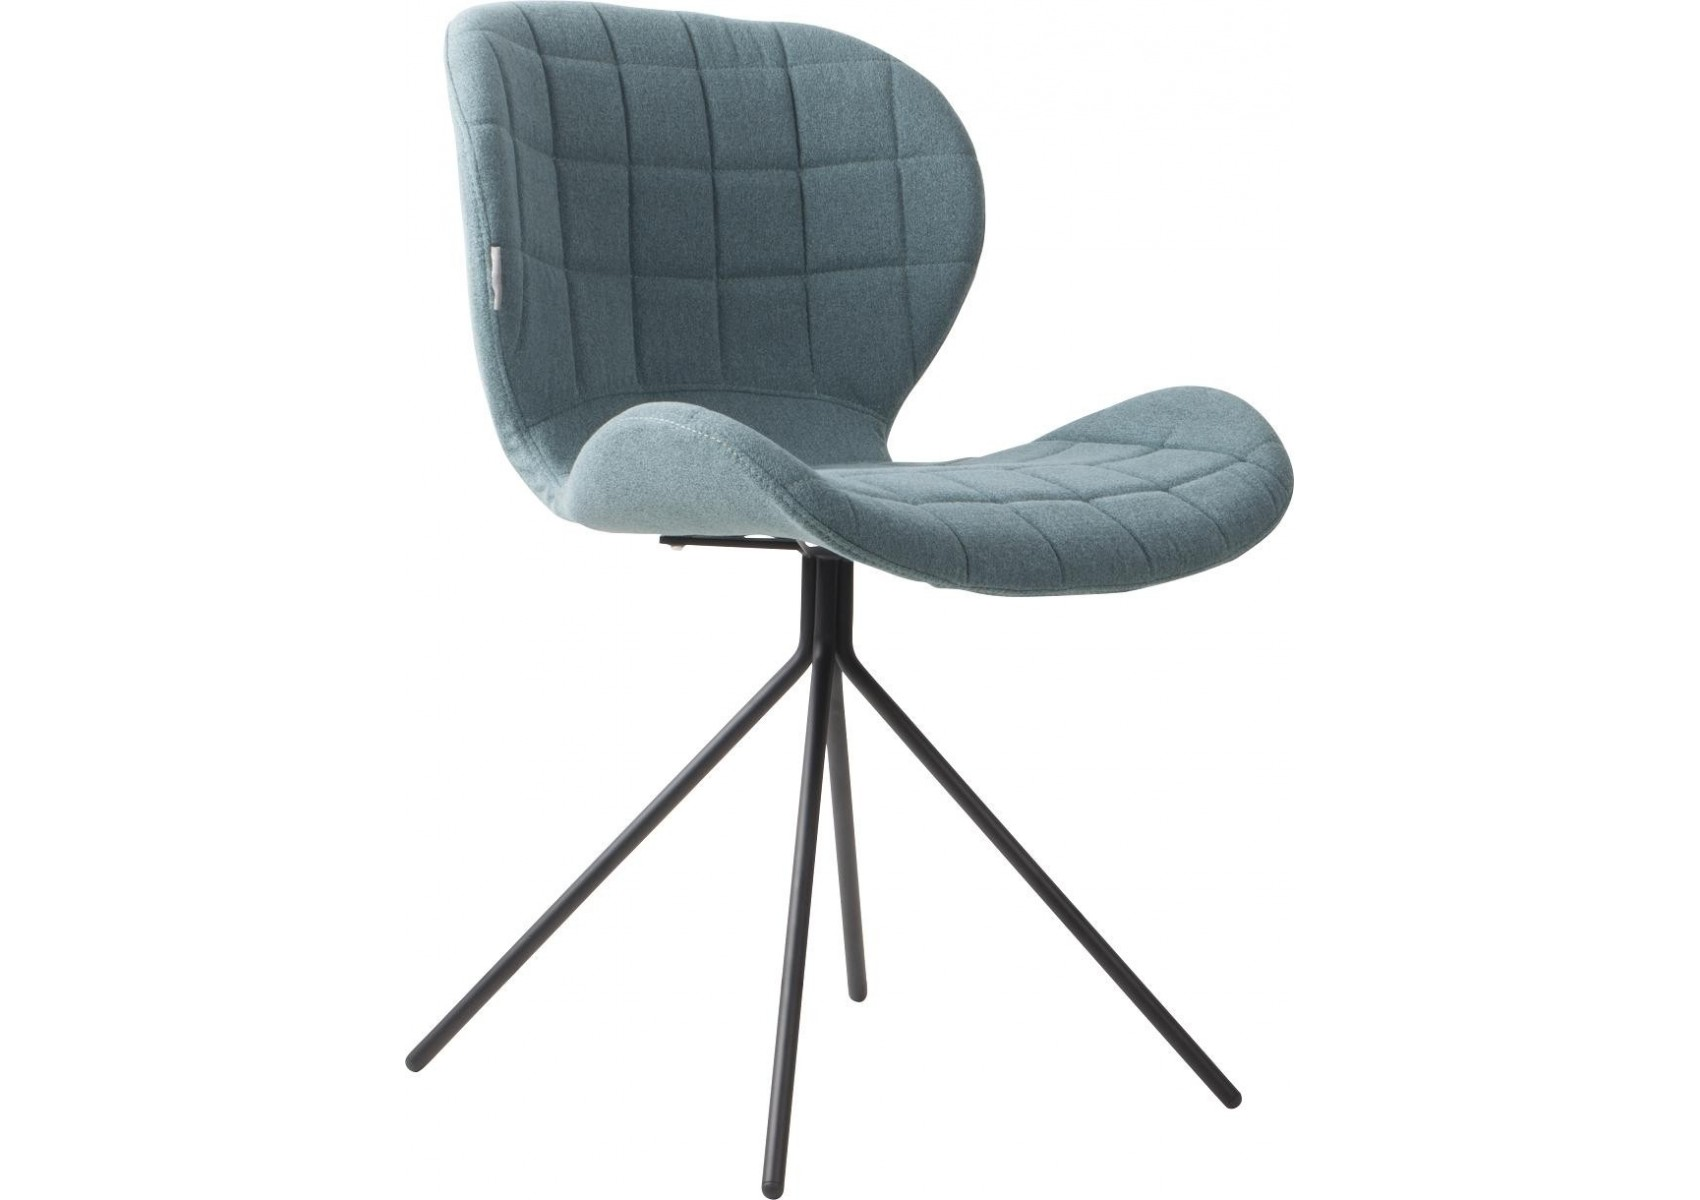 Chaise tissu omg par zuiver for Chaise zuiver